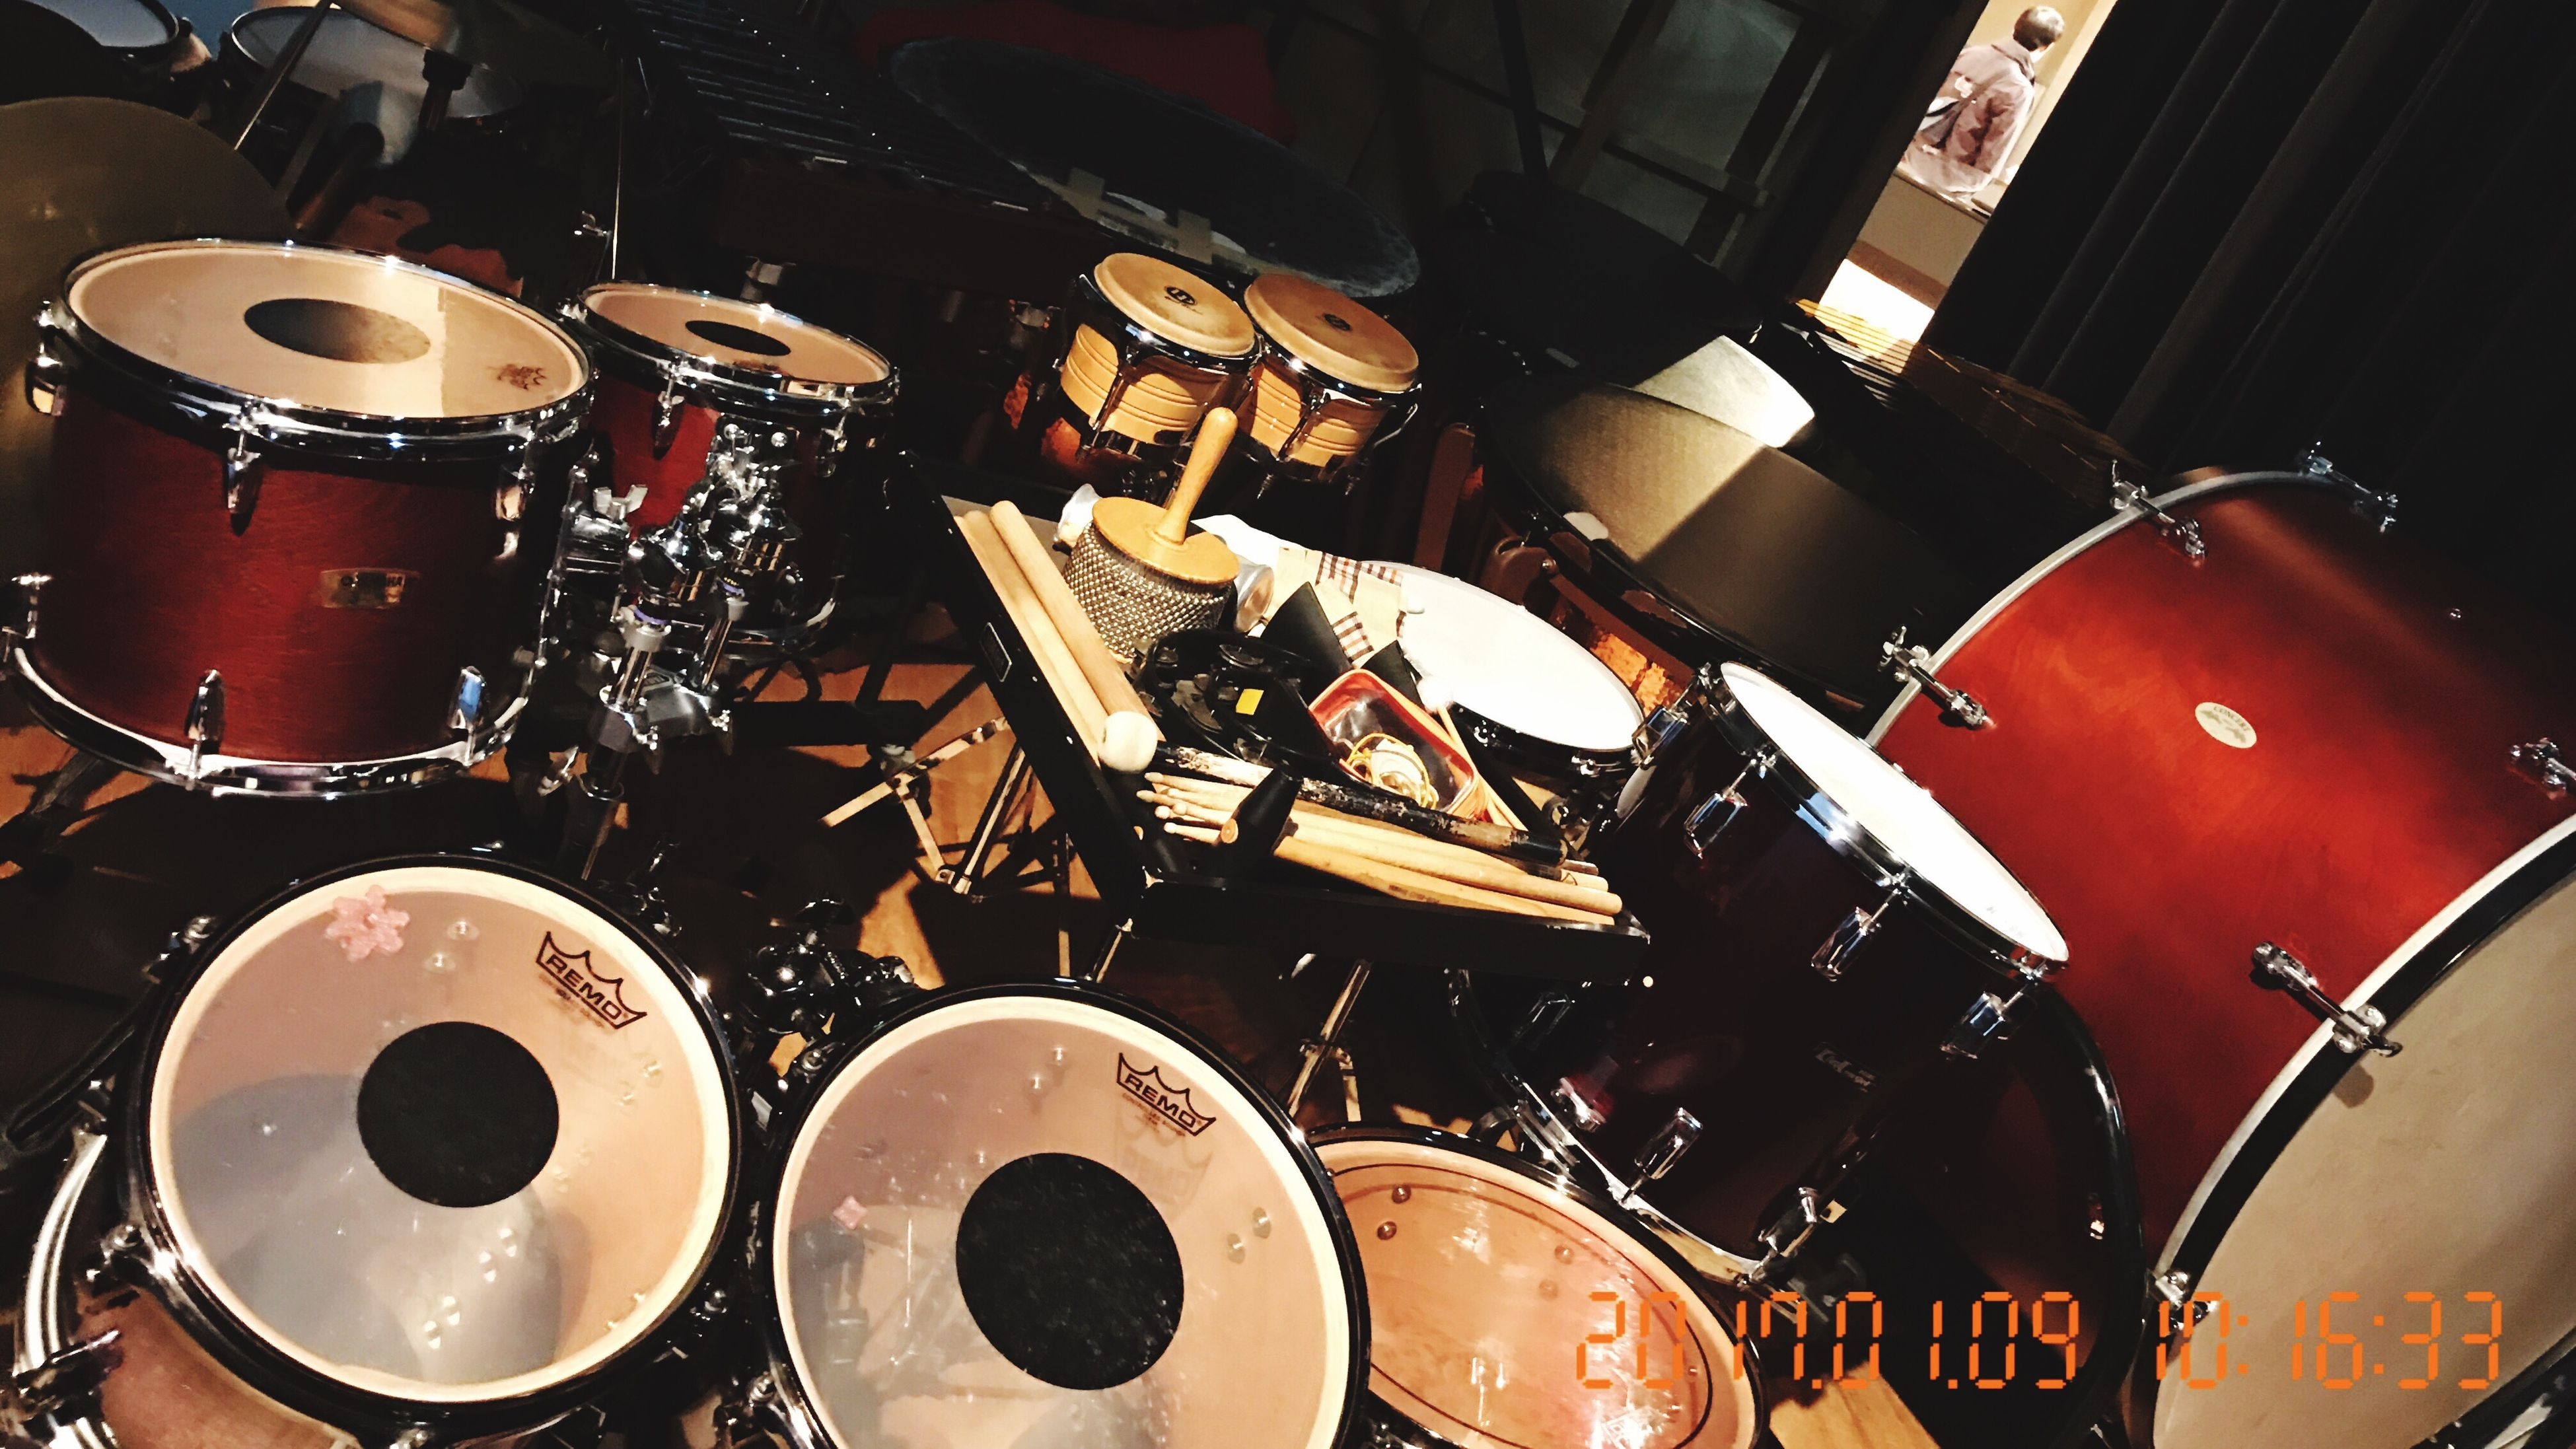 music, indoors, arts culture and entertainment, nightlife, musical instrument, night, drum kit, no people, rock music, popular music concert